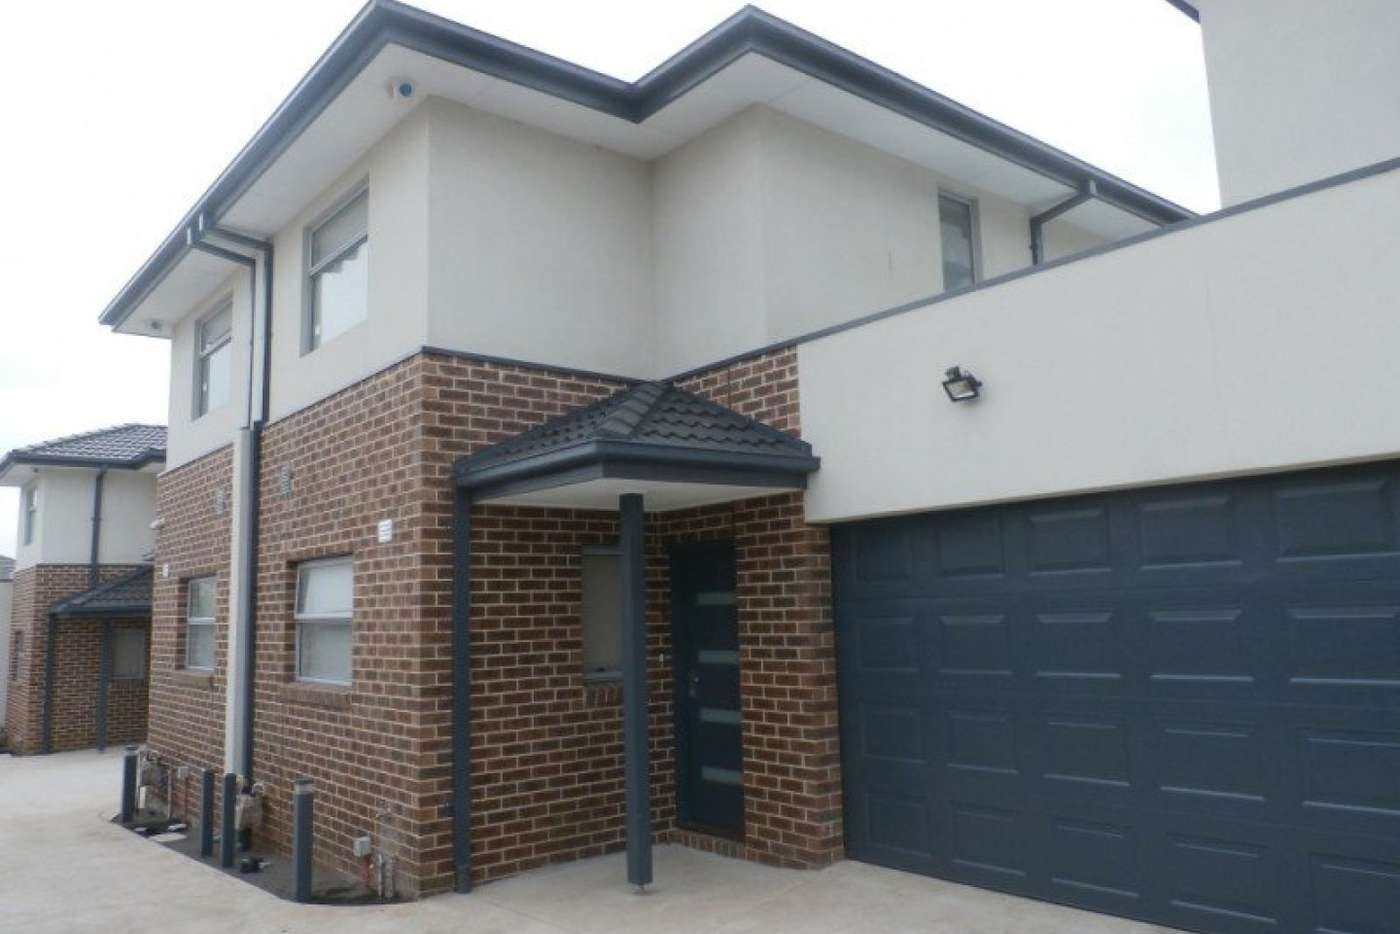 Main view of Homely townhouse listing, 2/7 Reynolds Parade, Pascoe Vale South VIC 3044